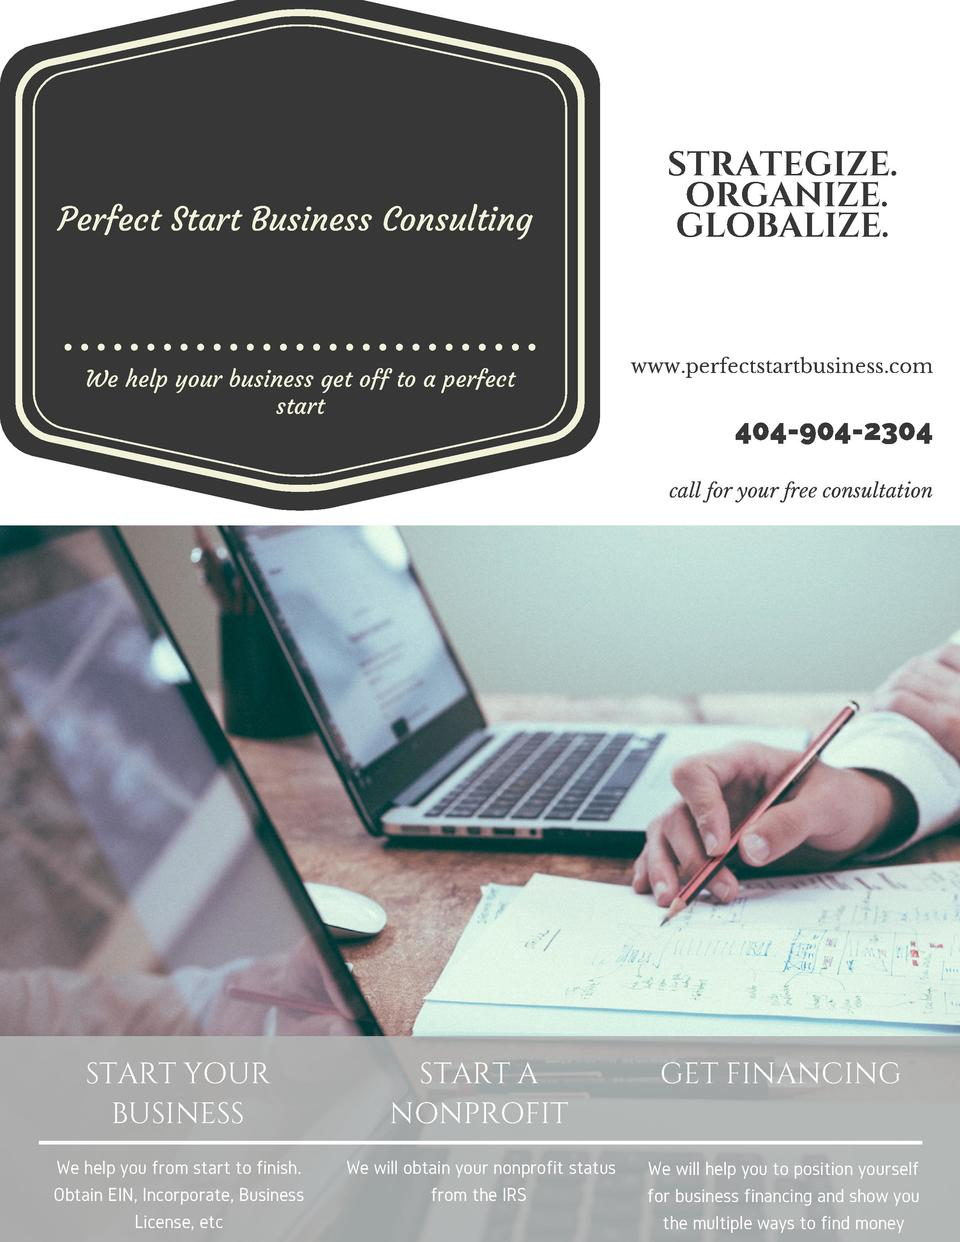 Perfect Start Business Consulting    We help your business get off to a perfect start  STRATEGIZE. ORGANIZE. GLOBALIZE.  w...